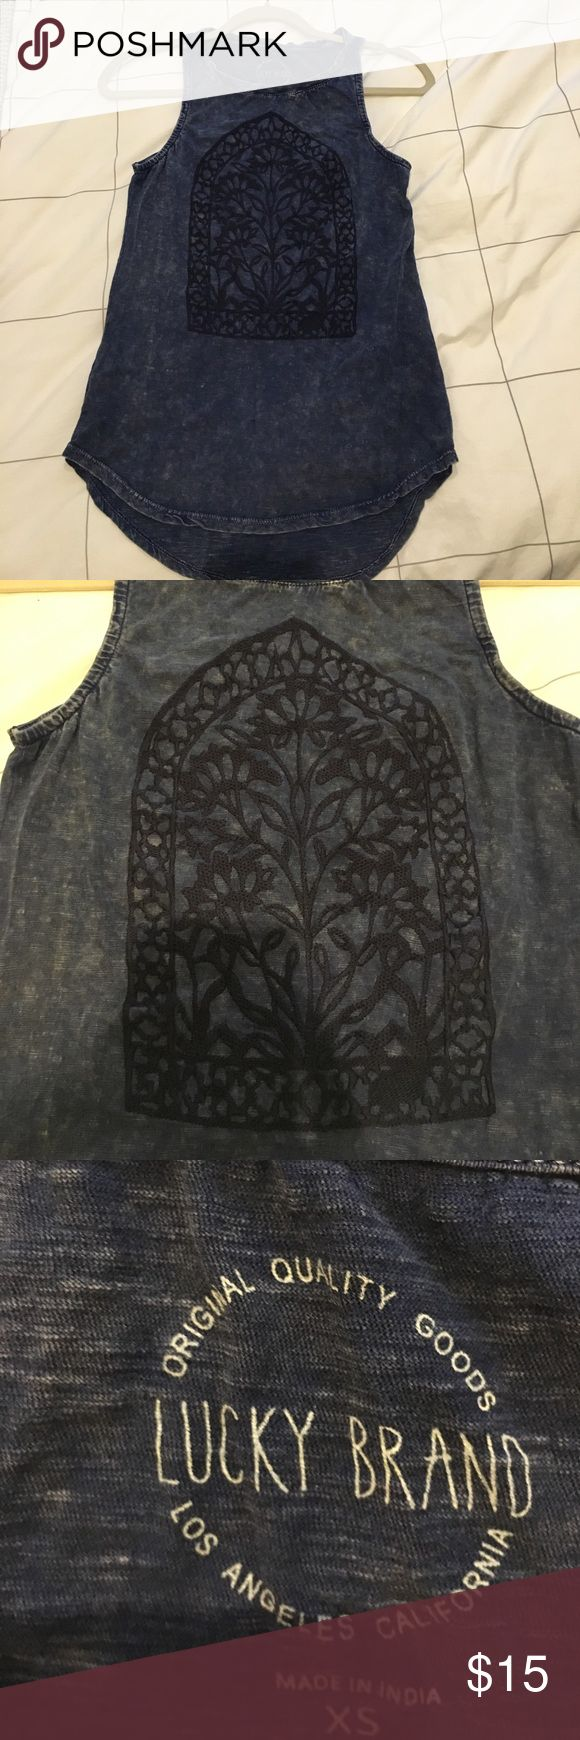 XS LUCKY BRAND DENIM WASHED TANK Never worn purchased at the lucky store, super cute denim washed with center floral embroidery tank. Perfect condition, PAIR WITH: white jeans/cut offs and wedges or espadrilles! Lucky Brand Tops Tank Tops